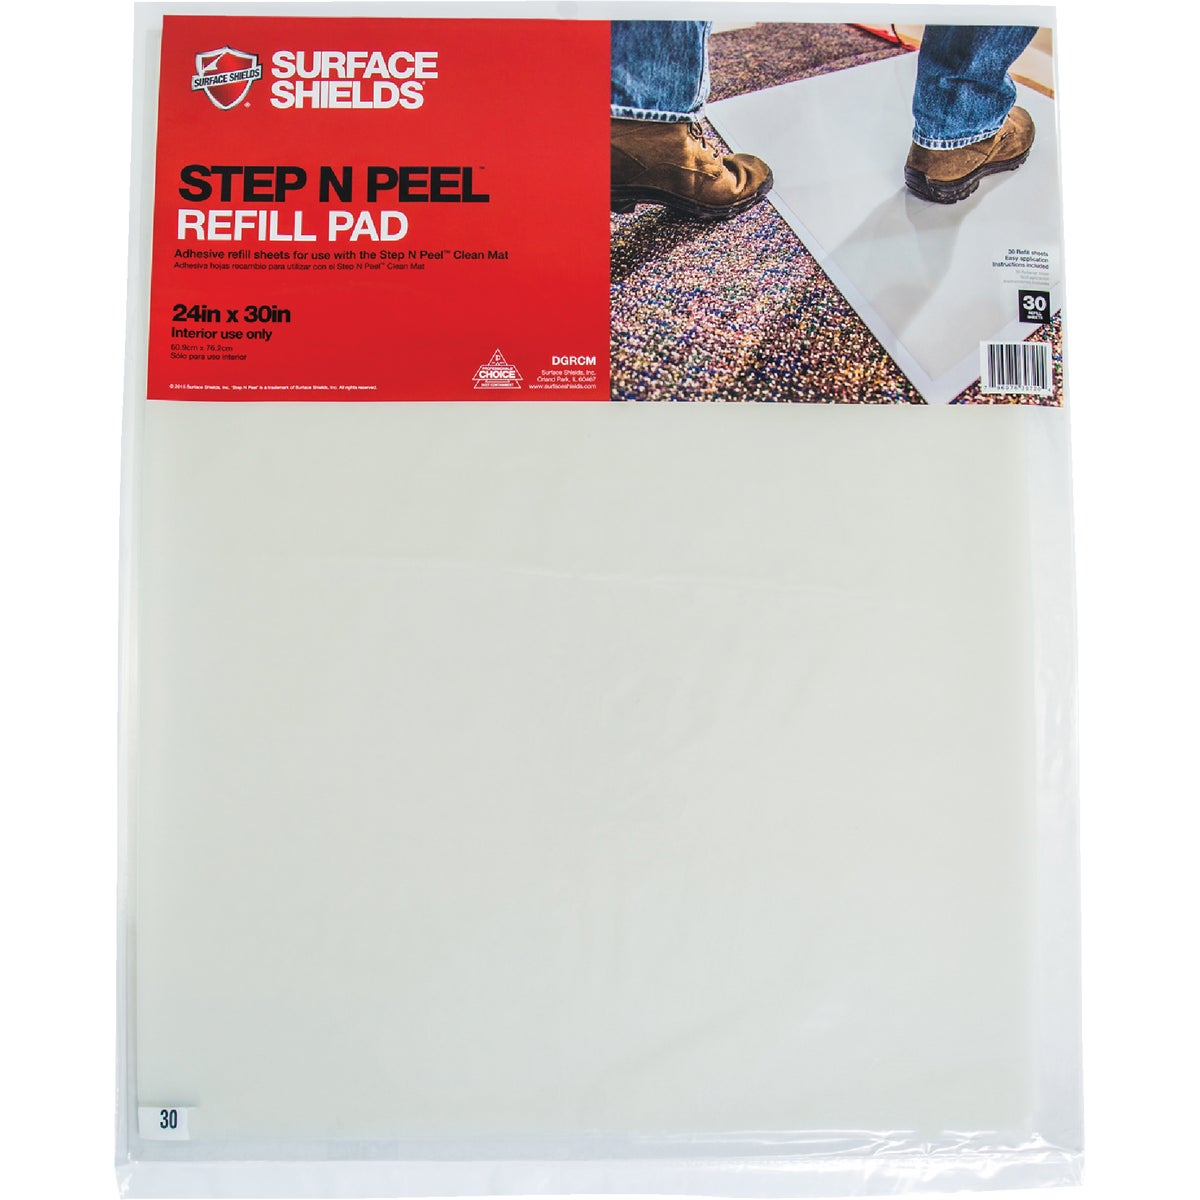 24X30 STPNPEL MAT RF SHT - DGRCM by Surface Shields Inc